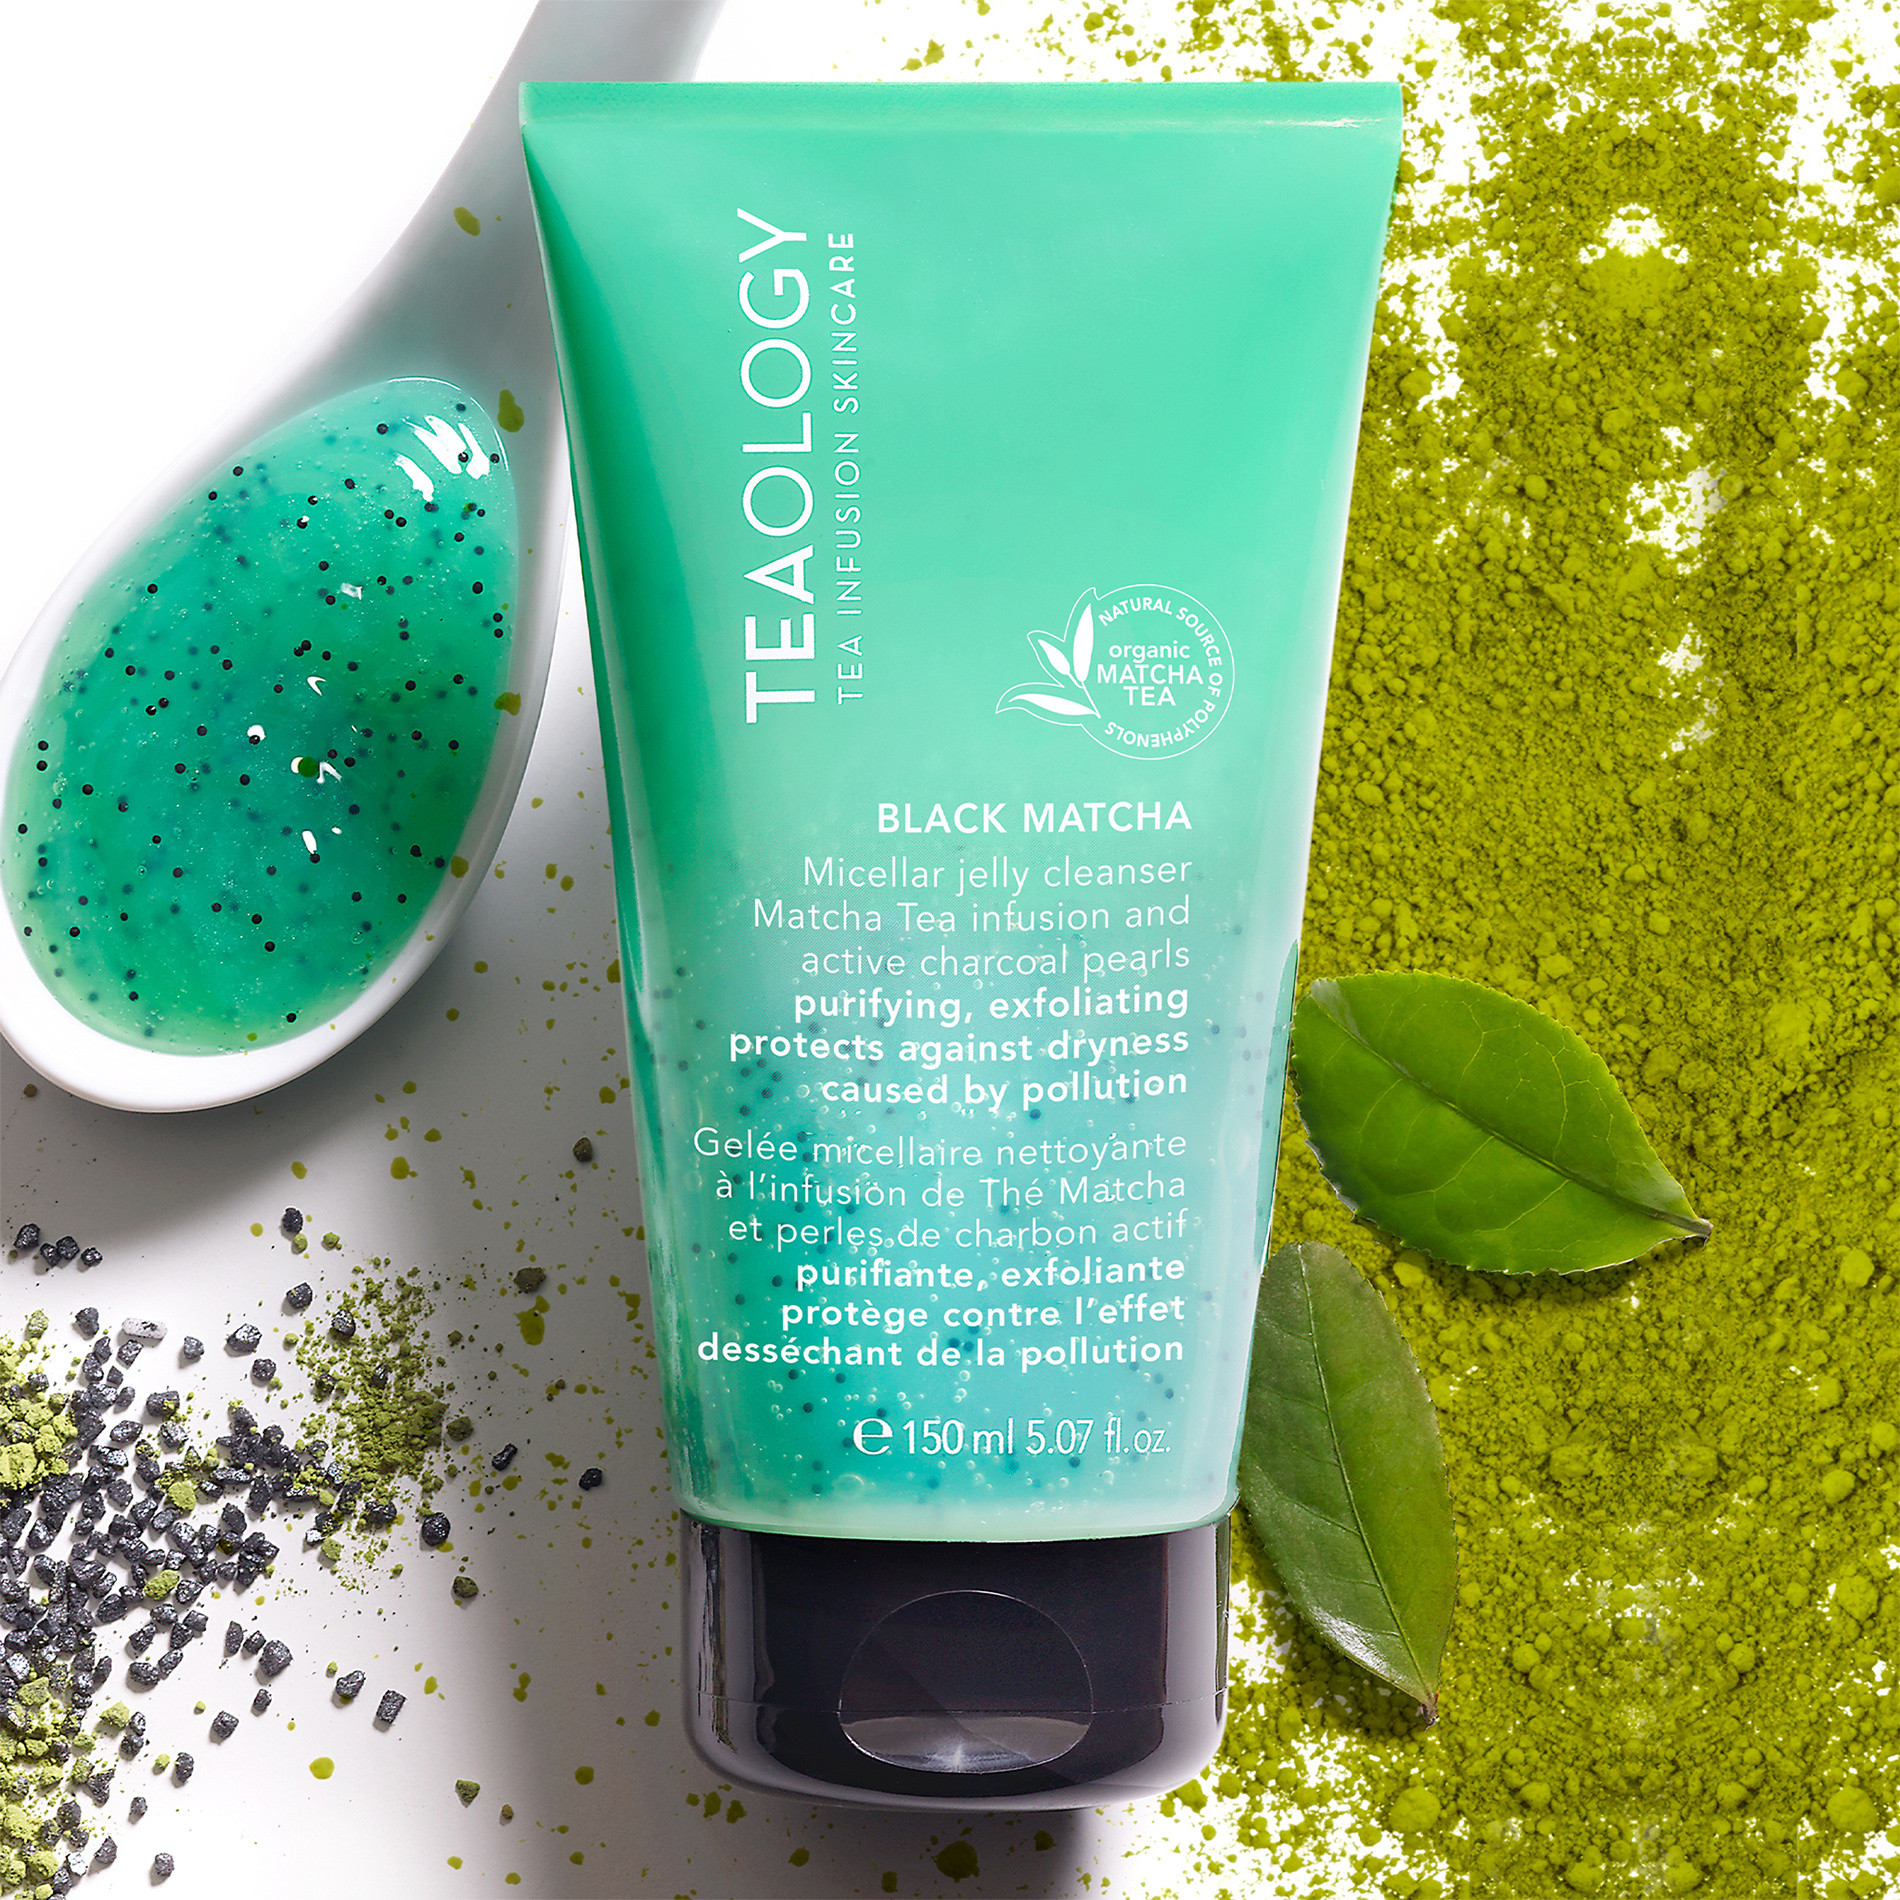 Teaology Black Matcha Micellar Jelly Cleanser 150 ml, Verde, large image number 1